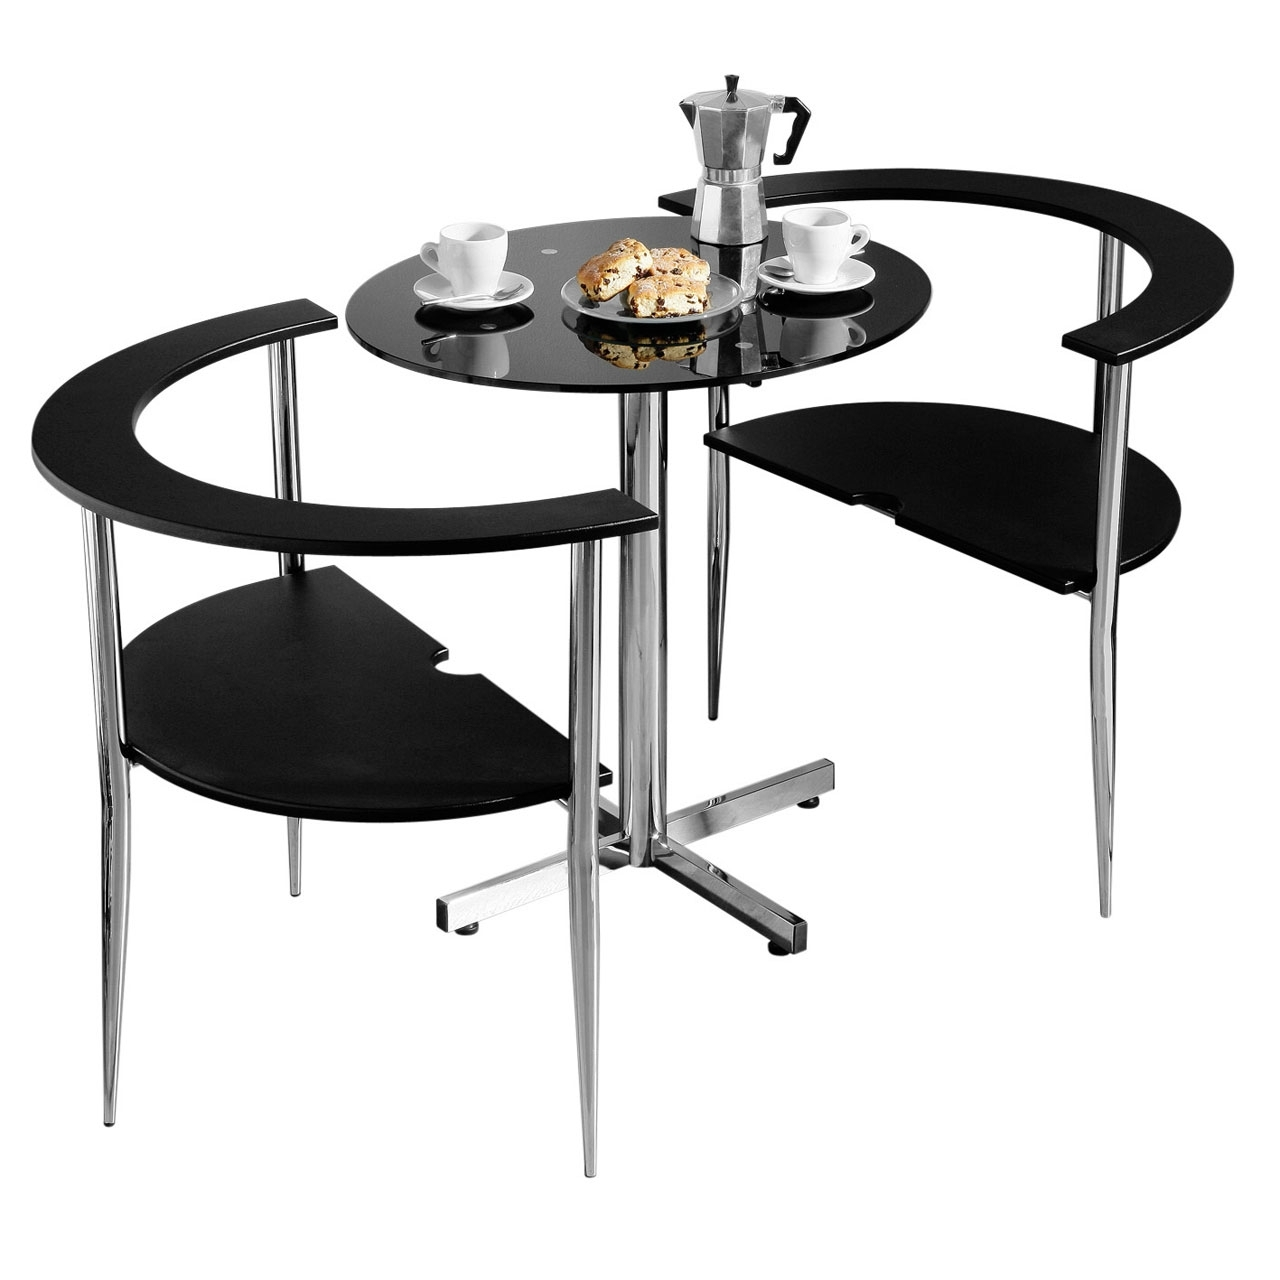 Trendy Dining Tables And 2 Chairs Within 3Pc Round Love Dining Set Black Tempered Glass Table Top 2 Chairs (View 23 of 25)